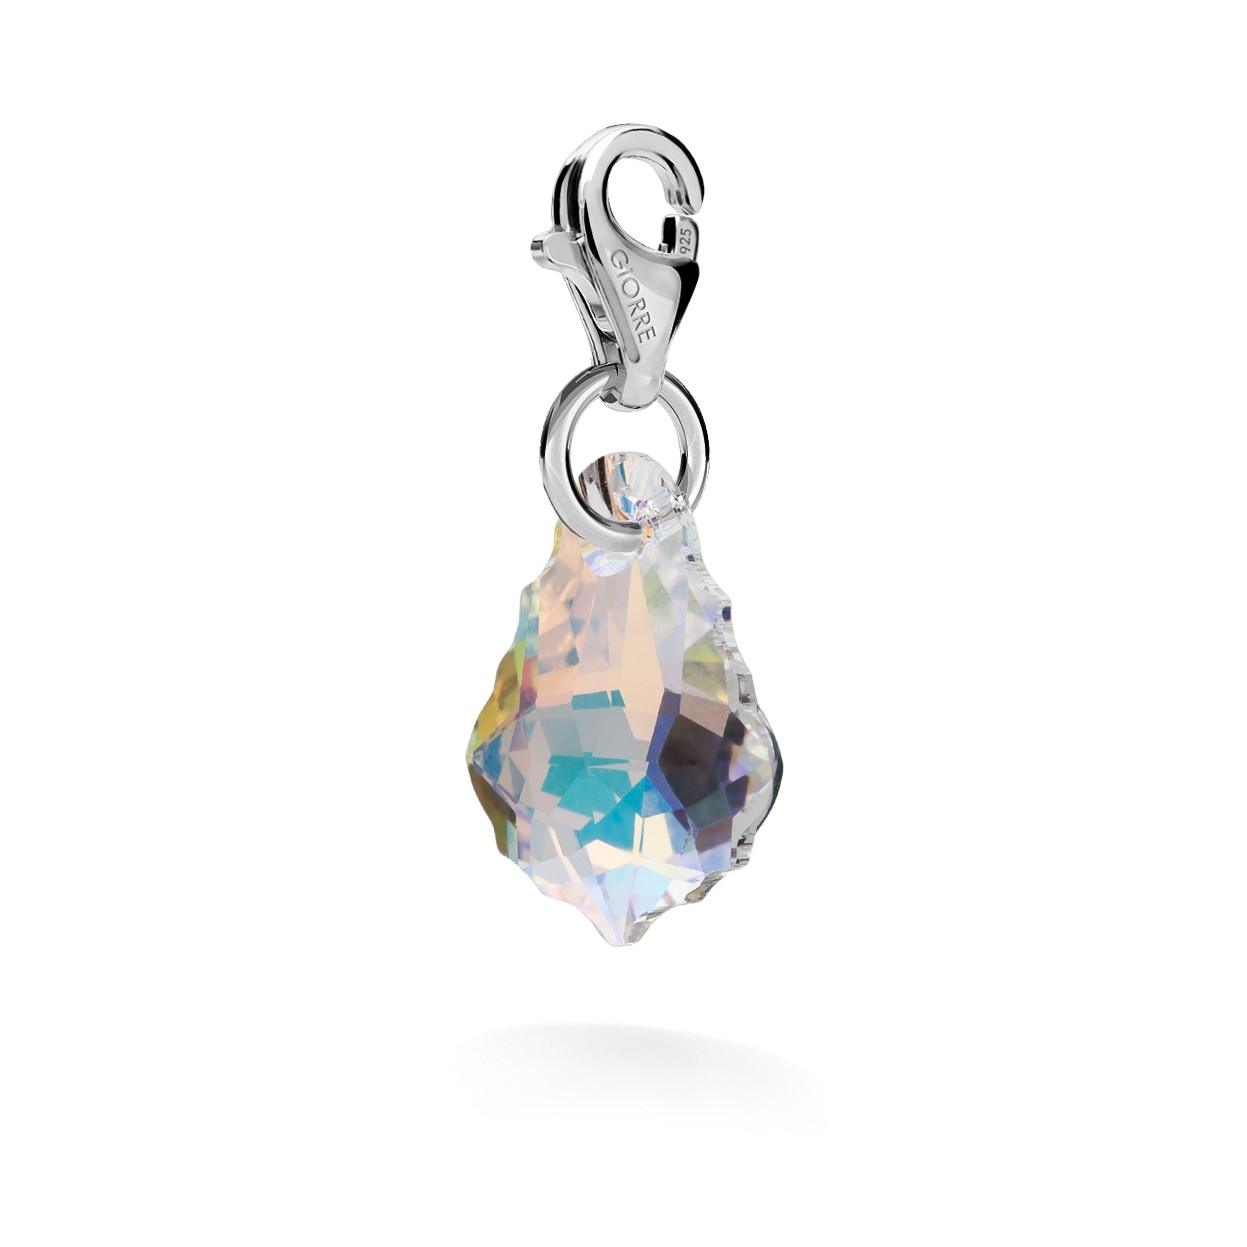 CHARMS 48, SWAROVSKI 6090 MM 16, STERLING SILVER (925) RHODIUM OR GOLD PLATED